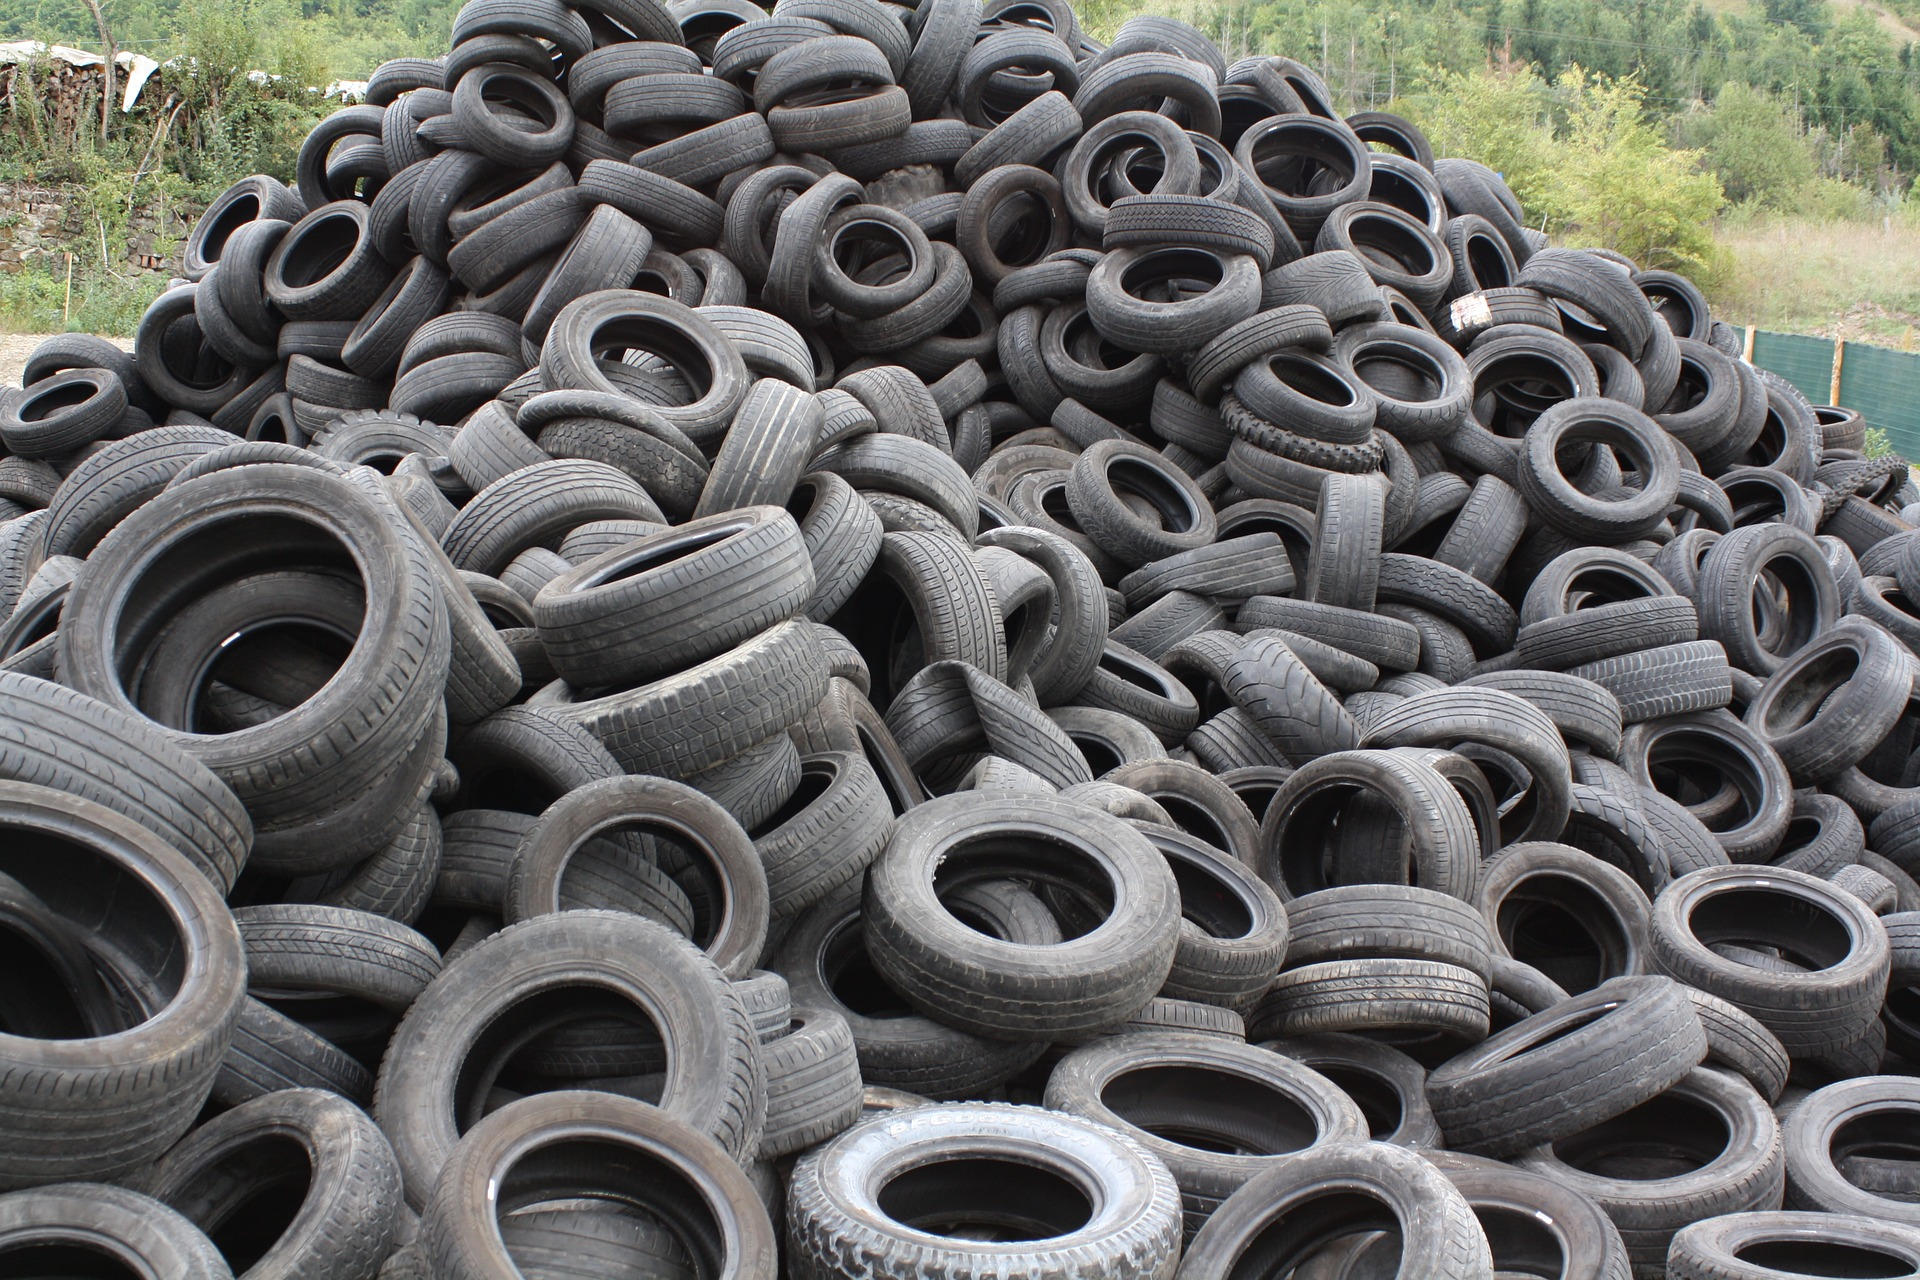 Tyre Collection & Disposal Manchester